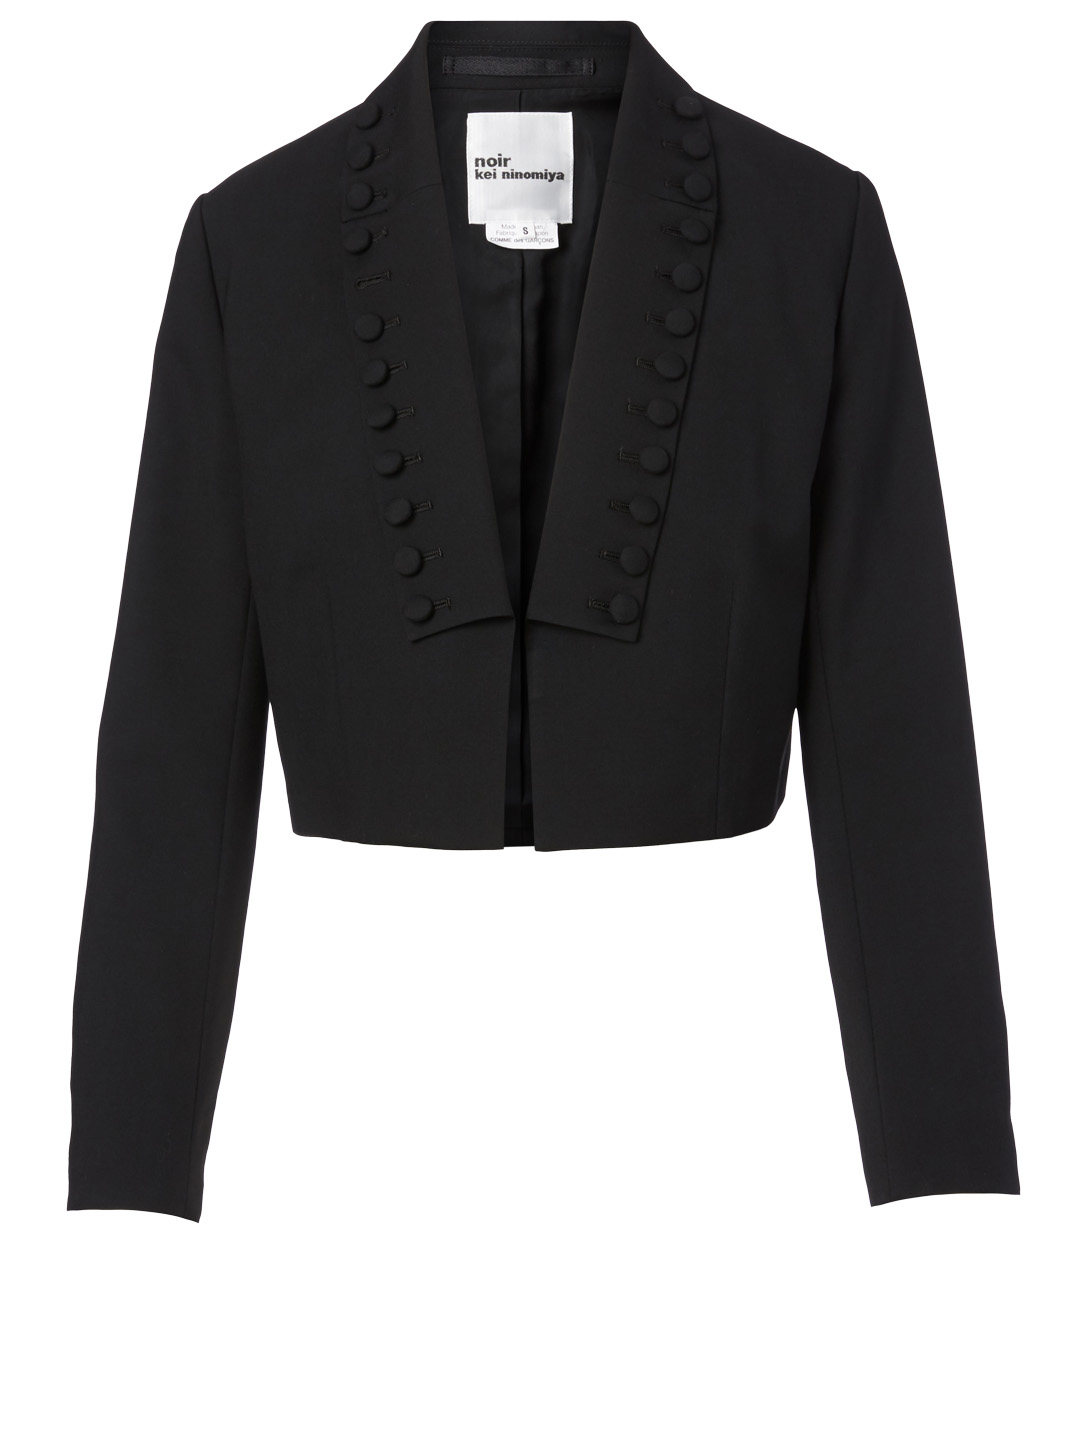 NOIR KEI NINOMIYA Wool Cropped Blazer Women's Black